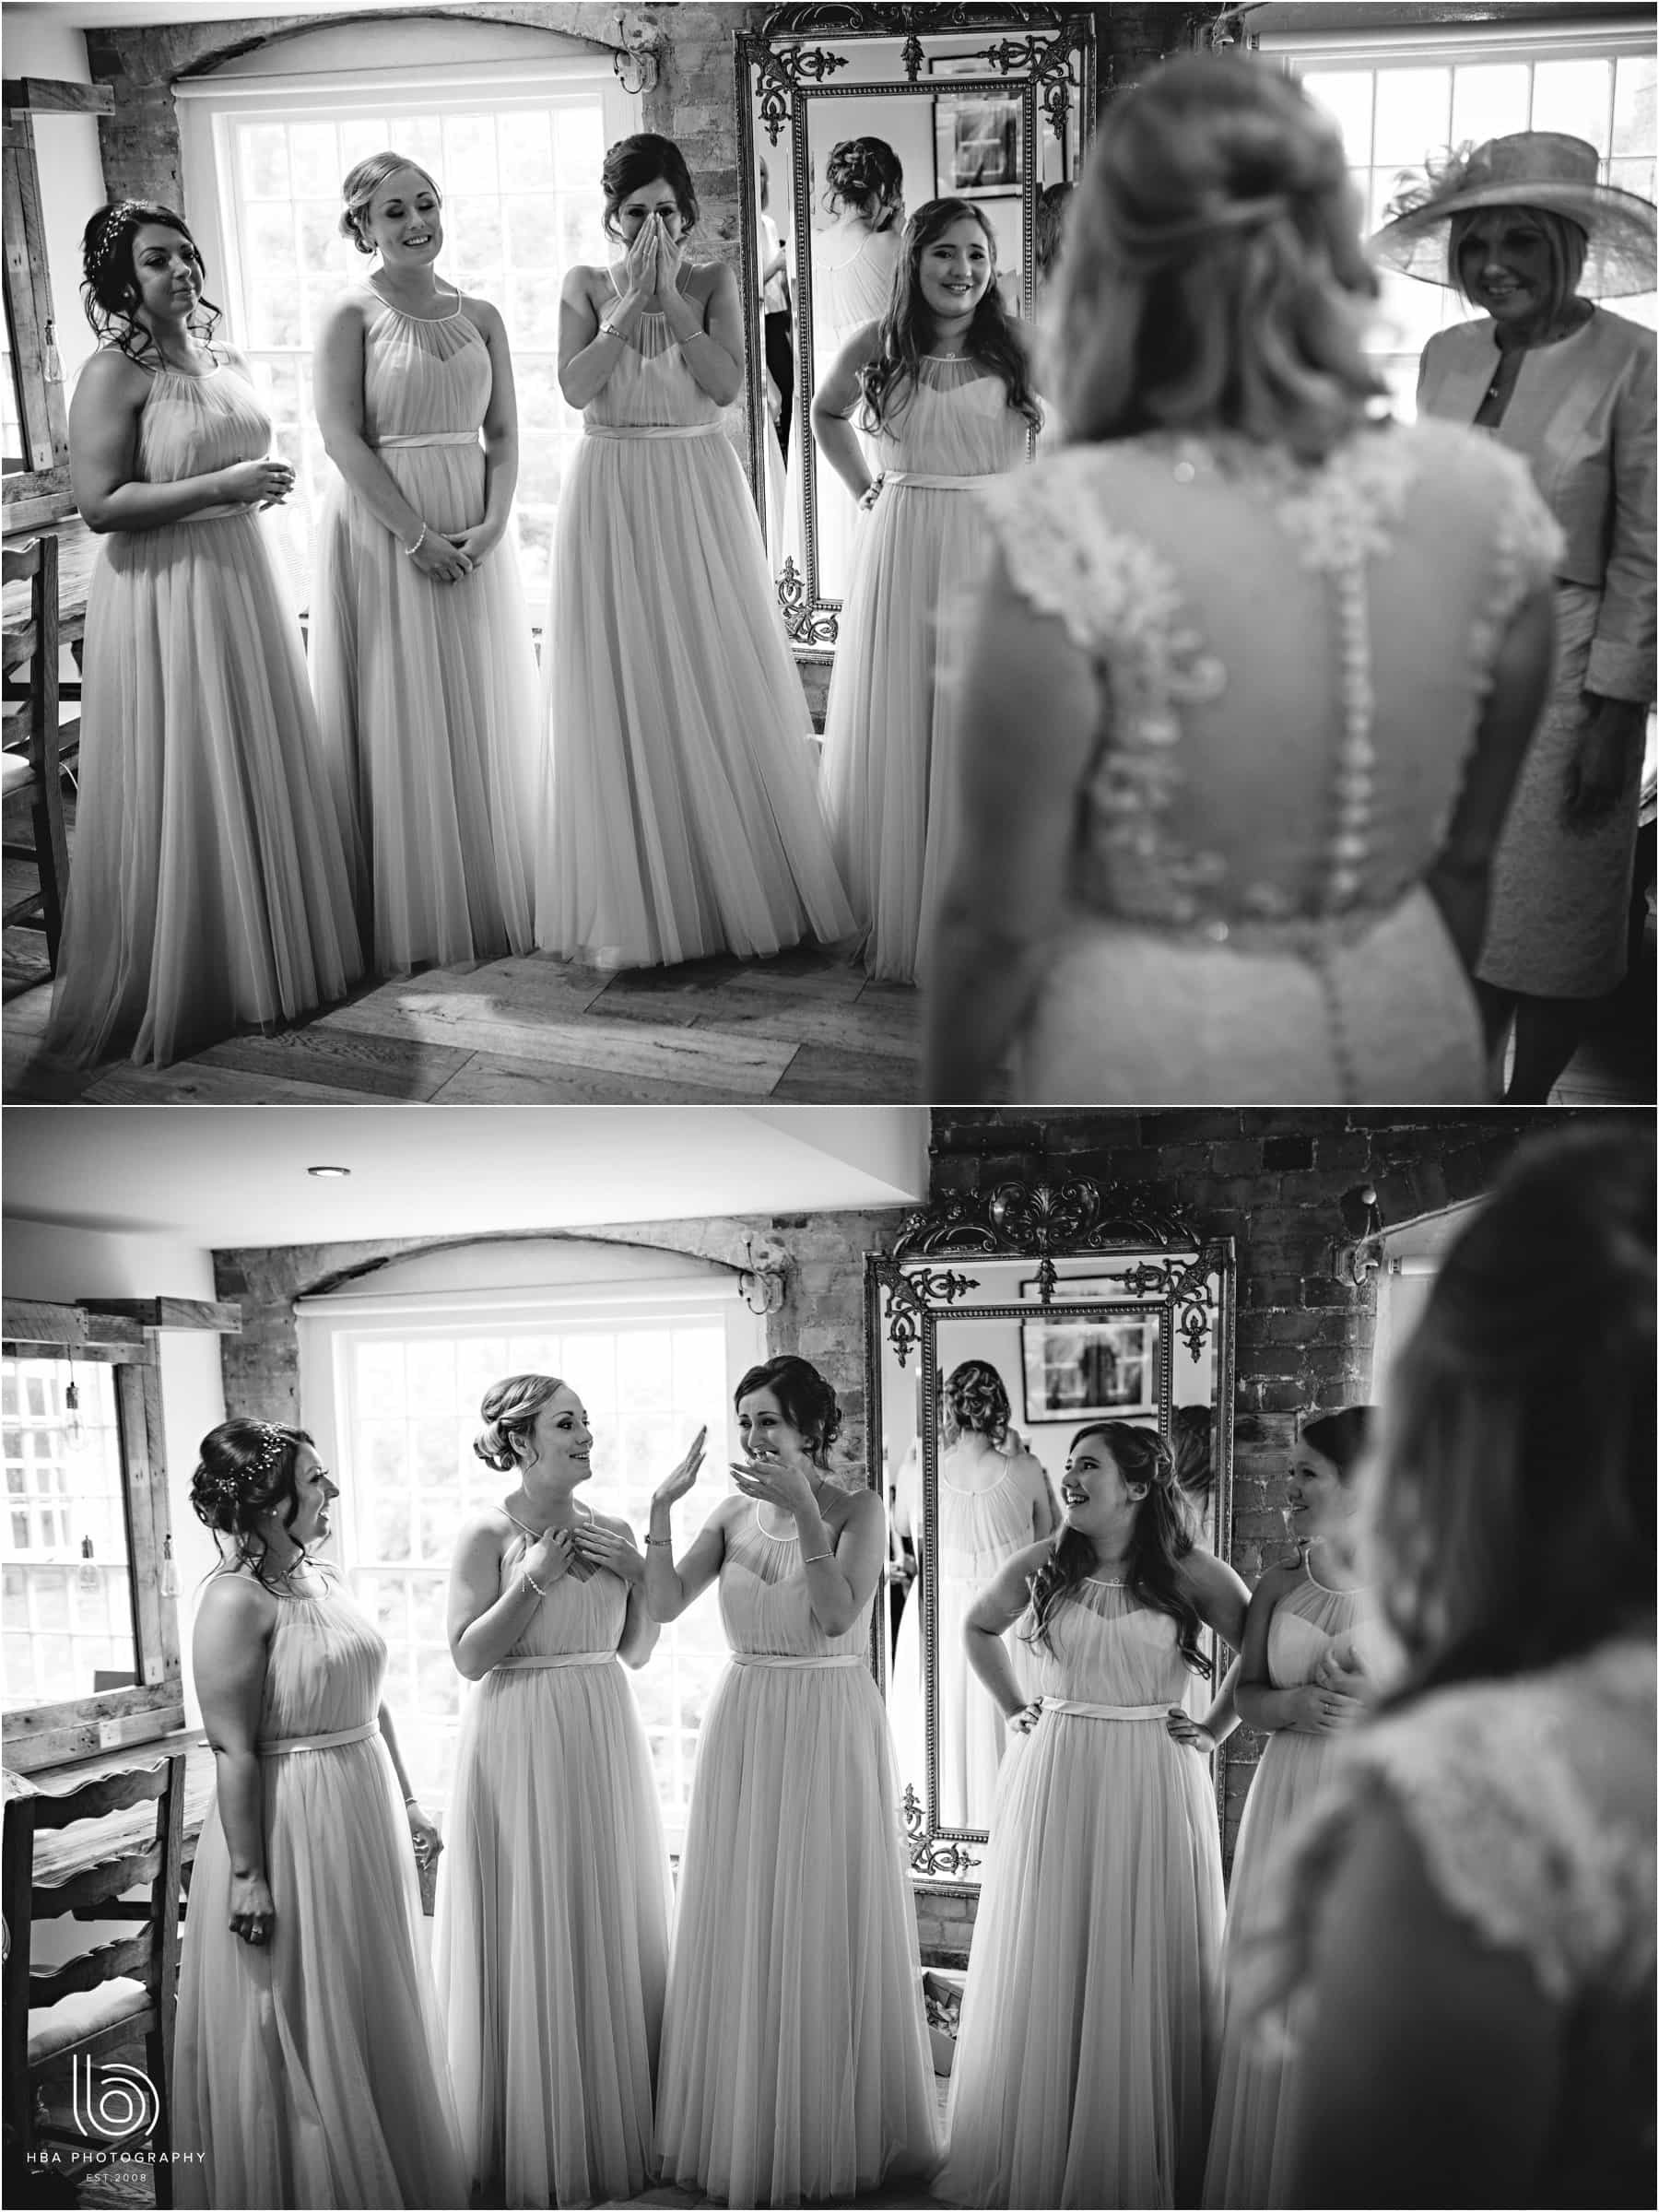 the bridesmaids seeing the bride for the first time